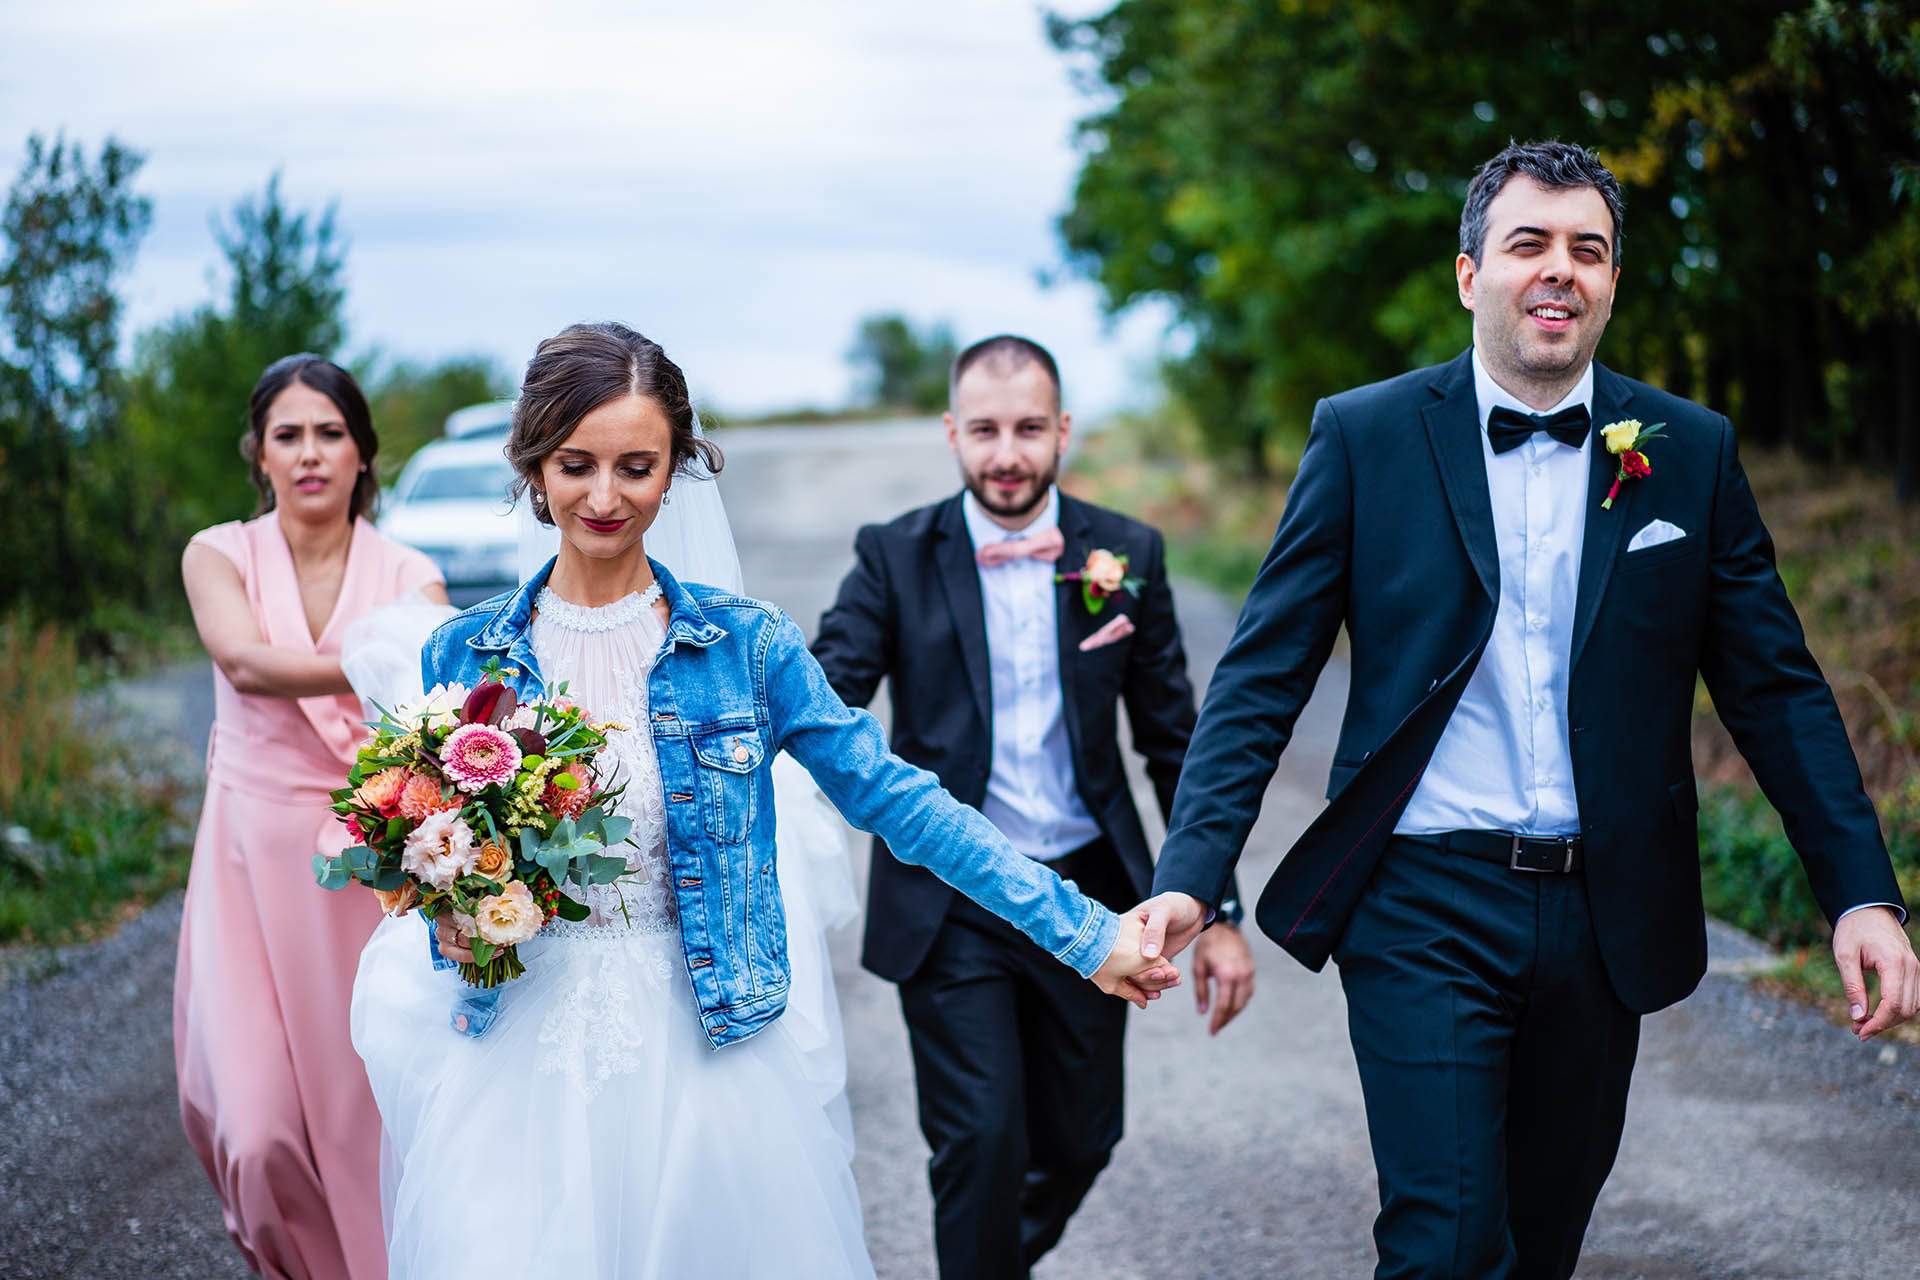 Villa Ekaterina Wedding Couple Image - Vakarel, Bulgaria | The bride and groom walk hand-in-hand down the road